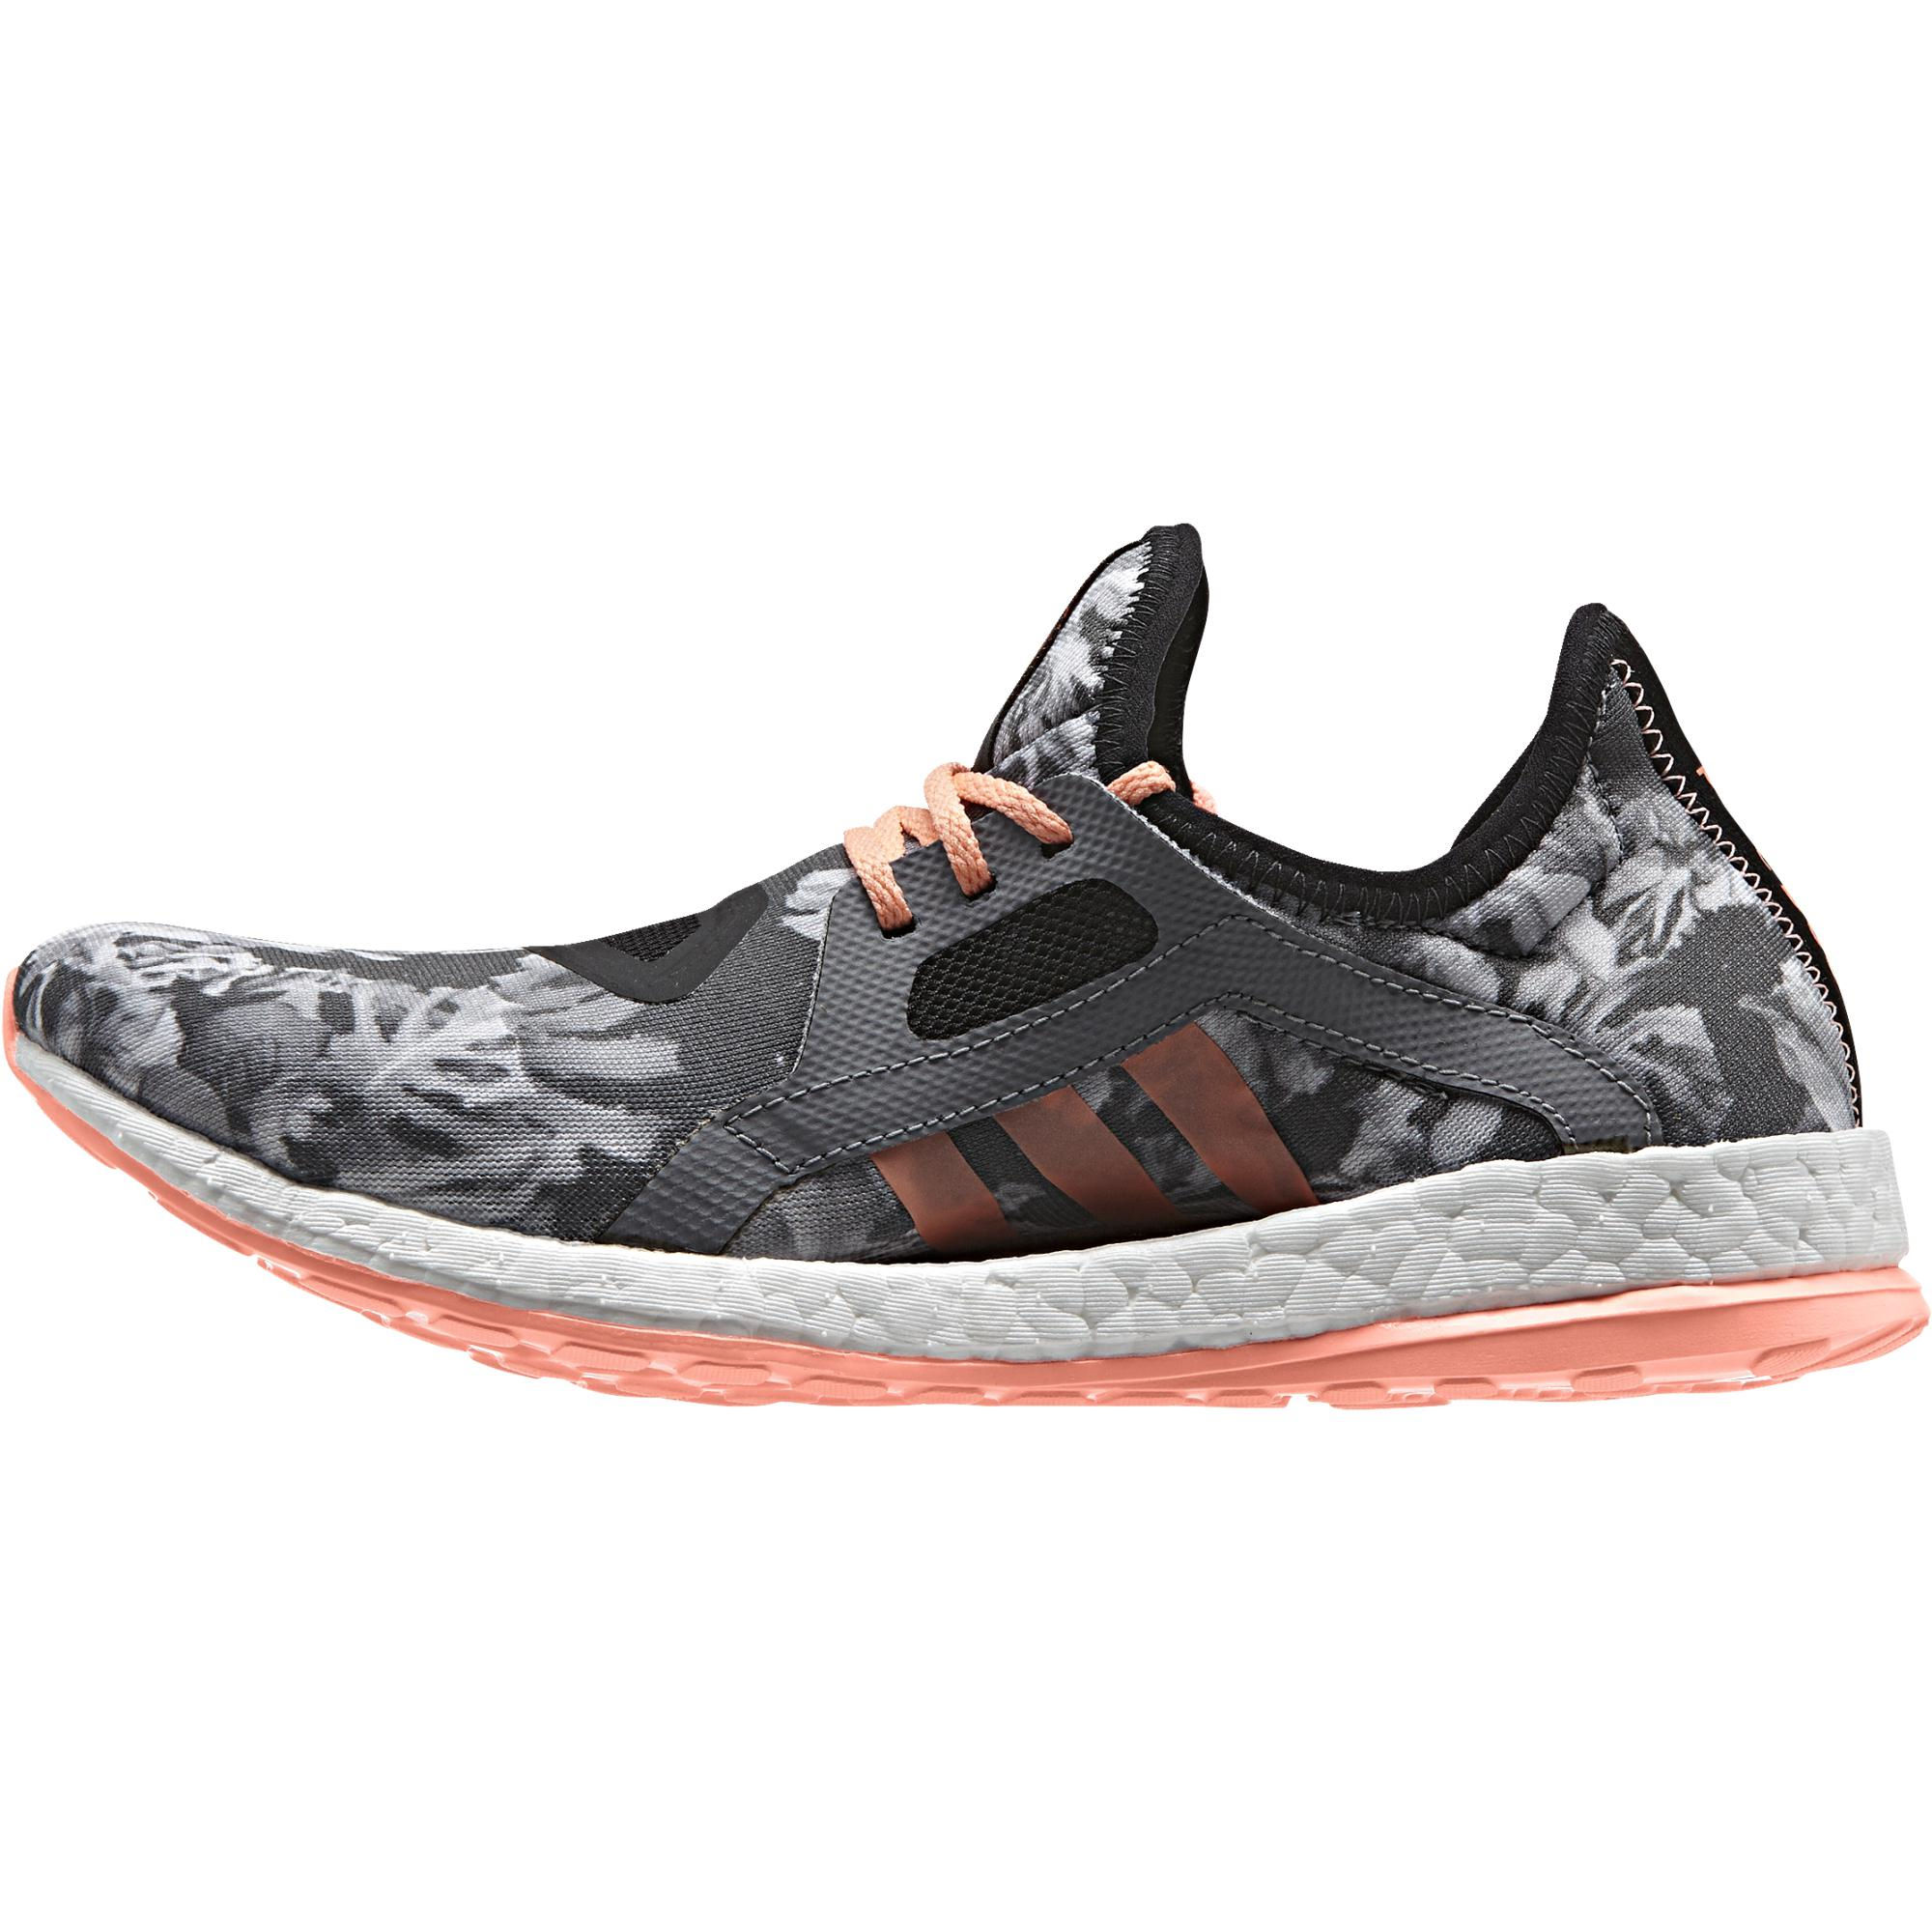 PureBOOST Shoes Adidas